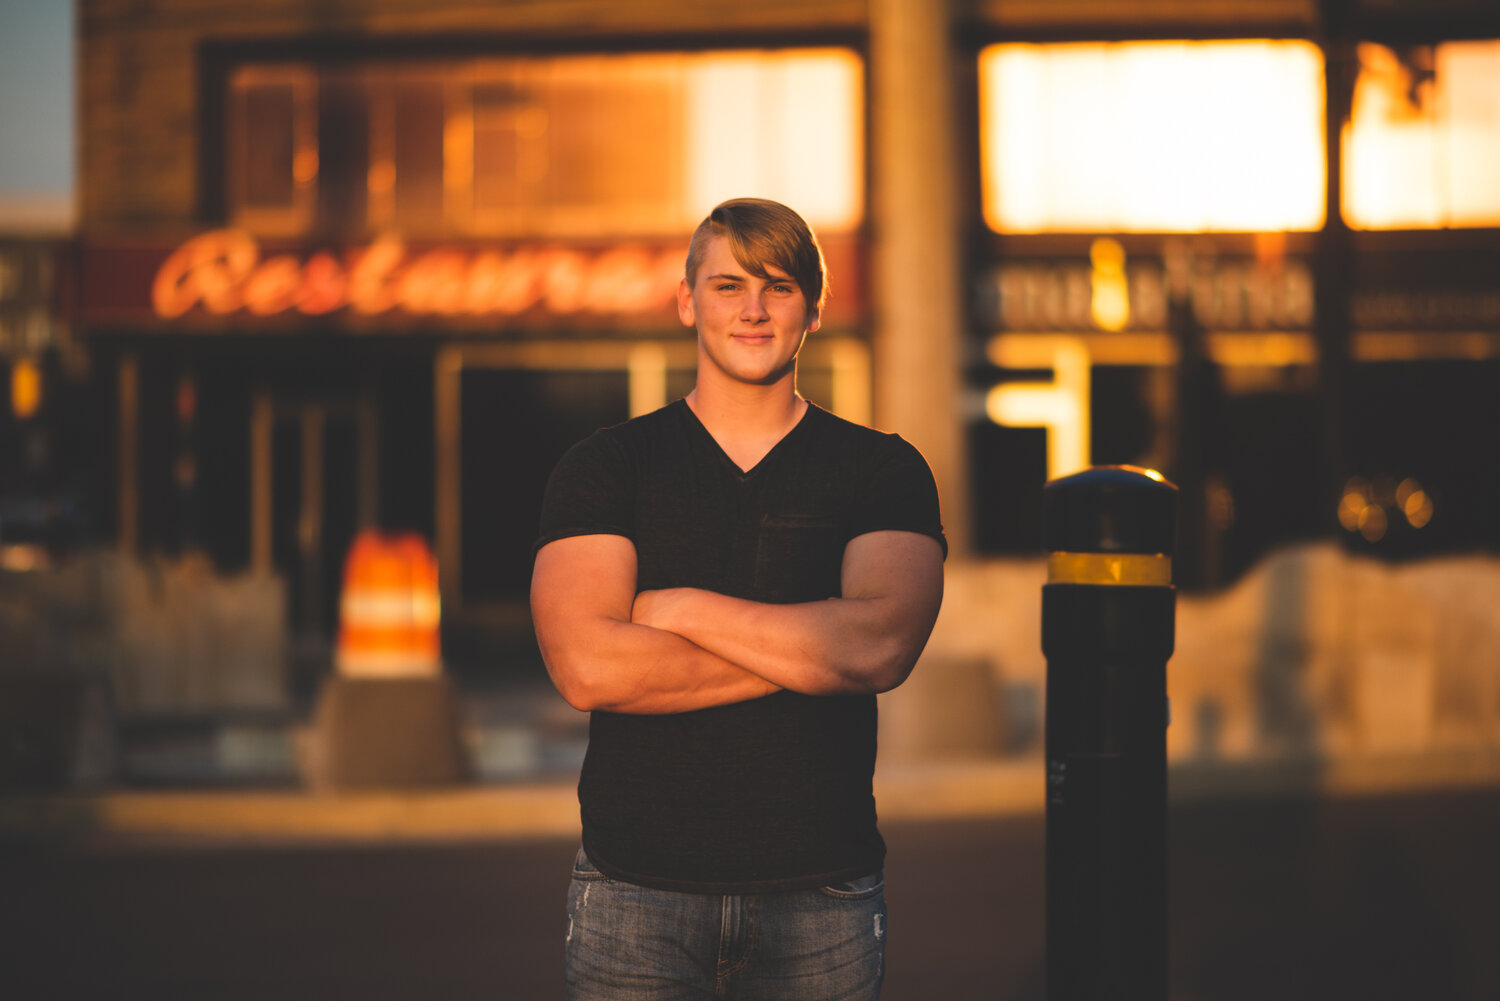 Indianapolis senior photography - Isaiah 2020